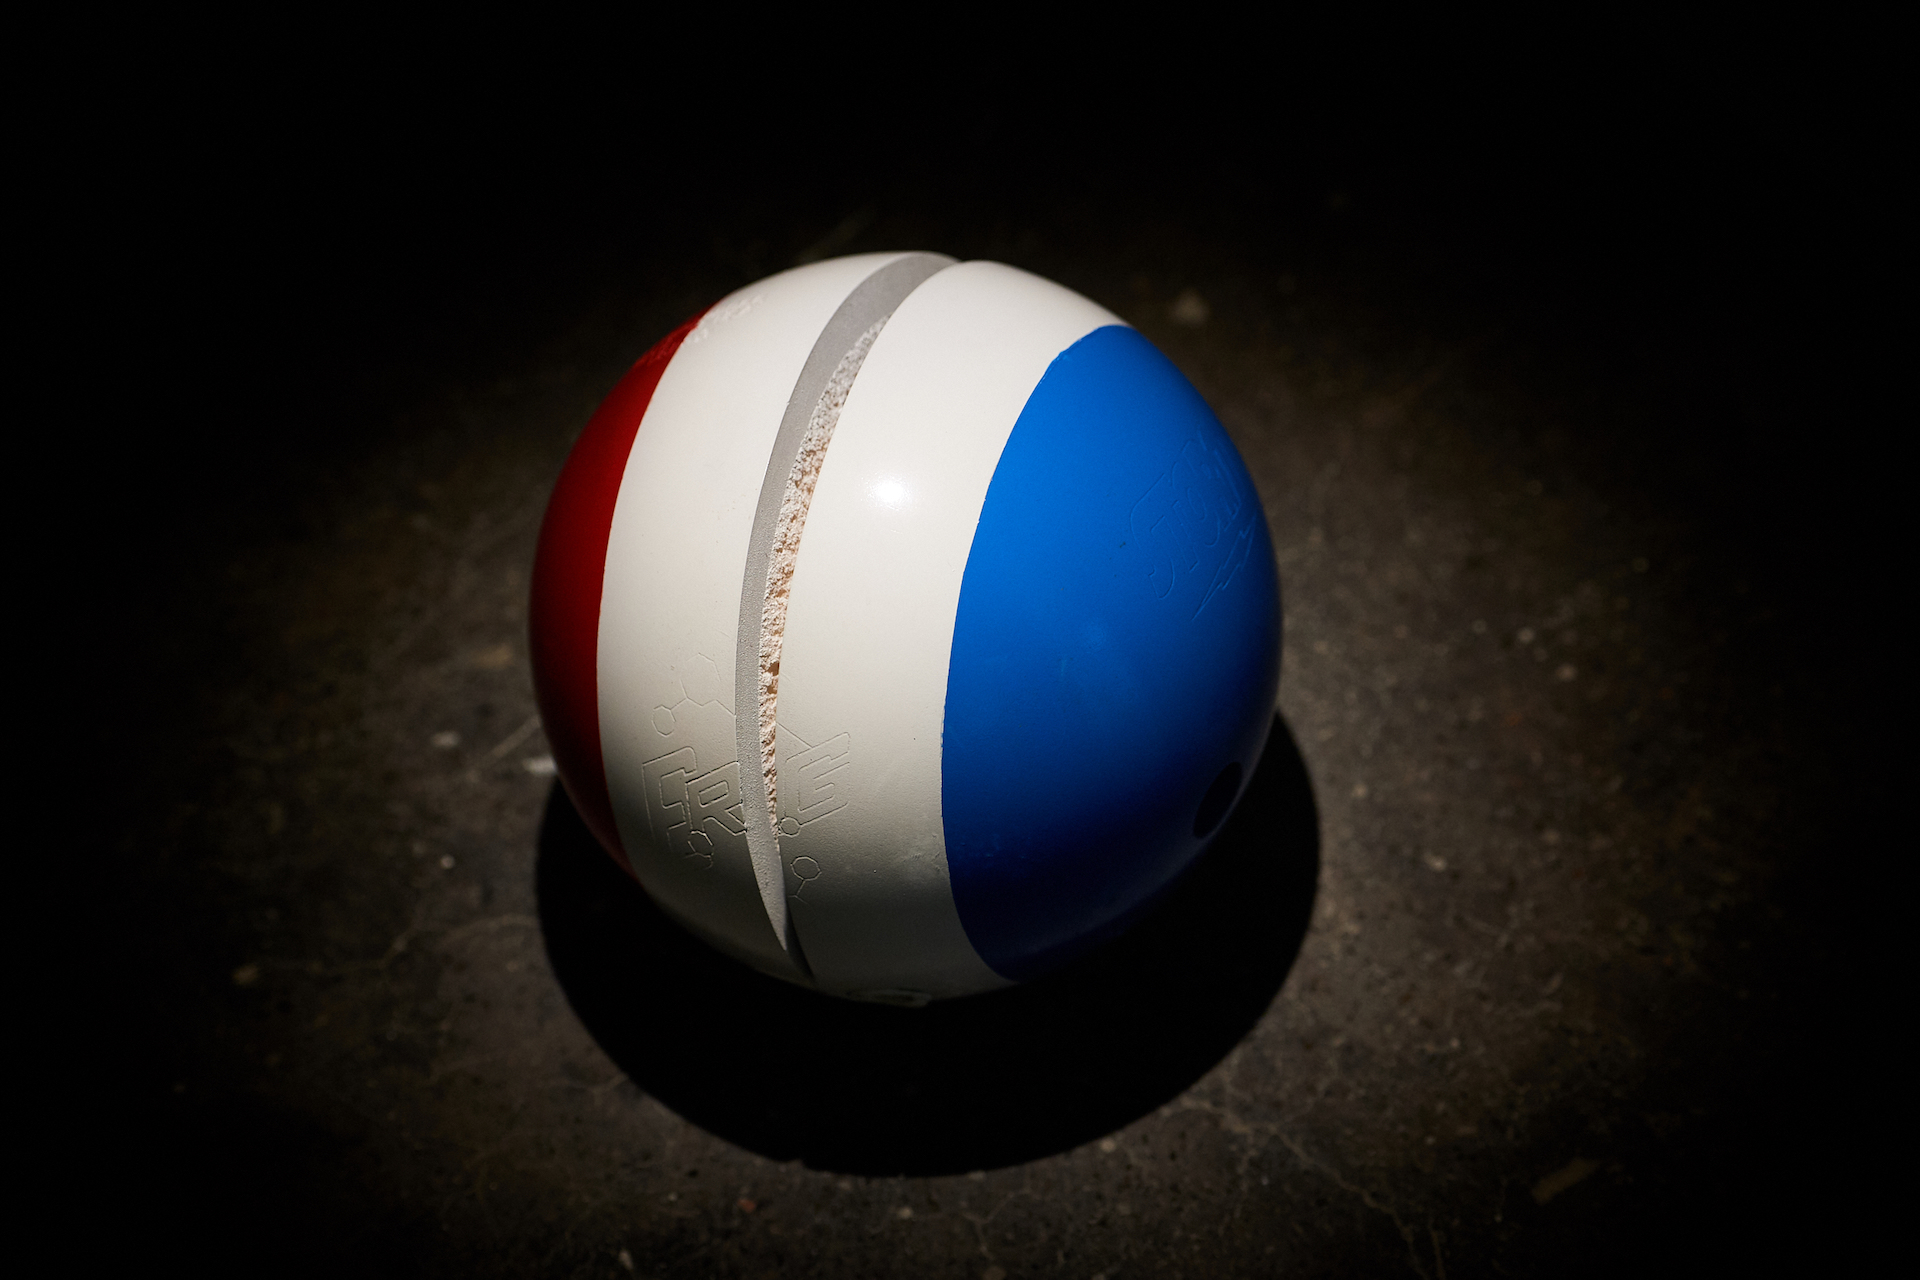 Cristiana de Marchi, Liberté, Égalité, Fraternité, 2018, bowling ball, PU spray paint, 22 cm diameter. Image courtesy of the artist and 1x1 Gallery.